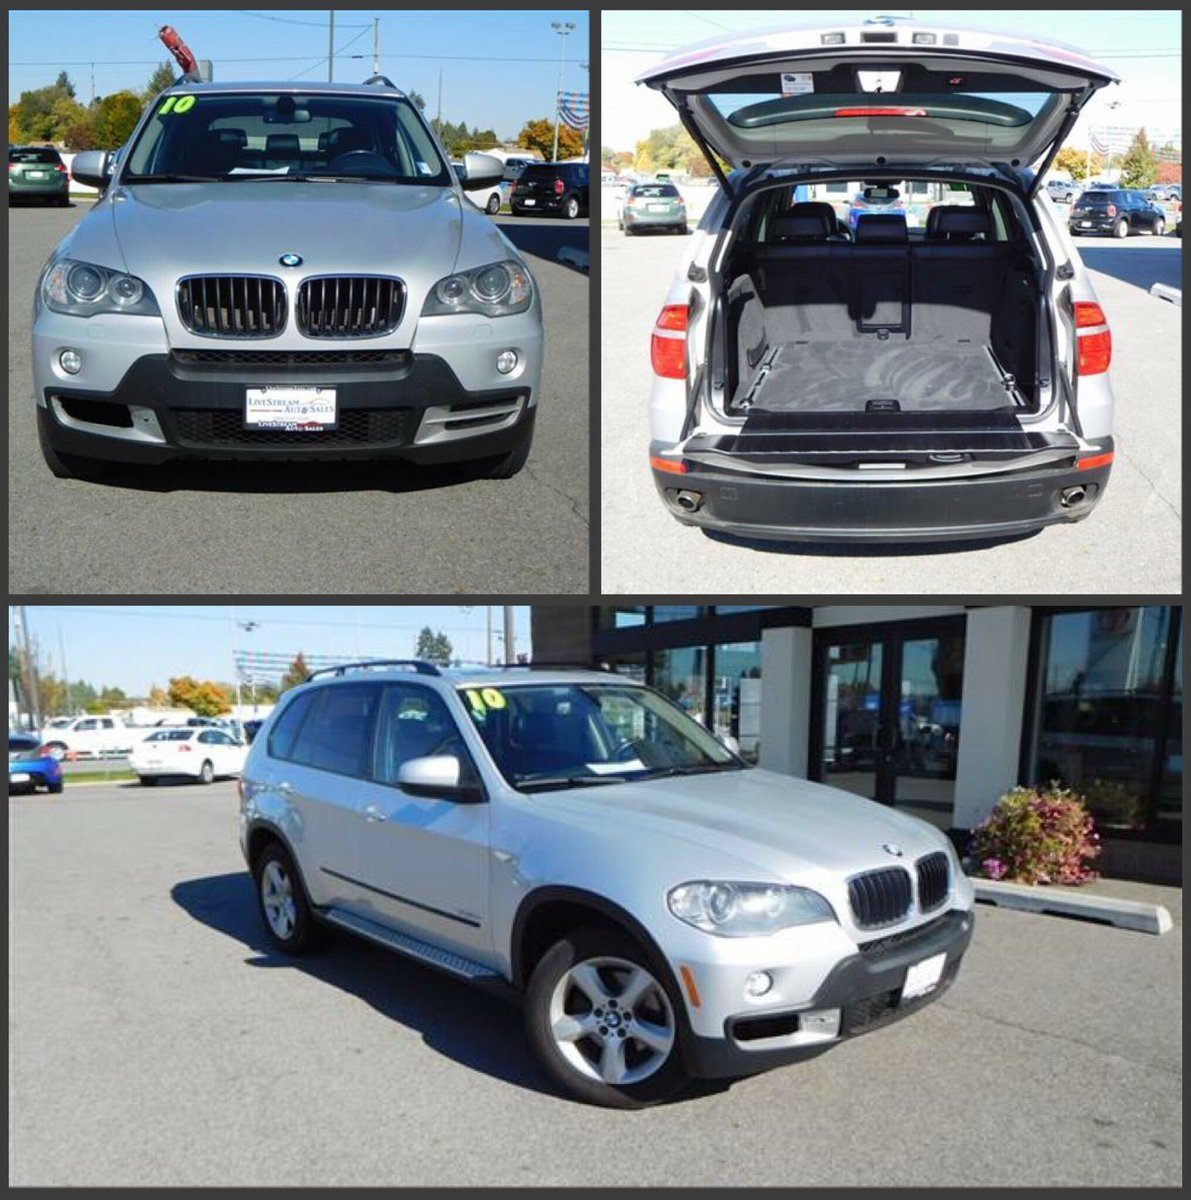 Come in and test drive this 2010 #BMW X5! We are located in #SpokaneValley! #Spokane #CDA #UsedCars #CarDealership #PNW<br>http://pic.twitter.com/glQkPtL4vL